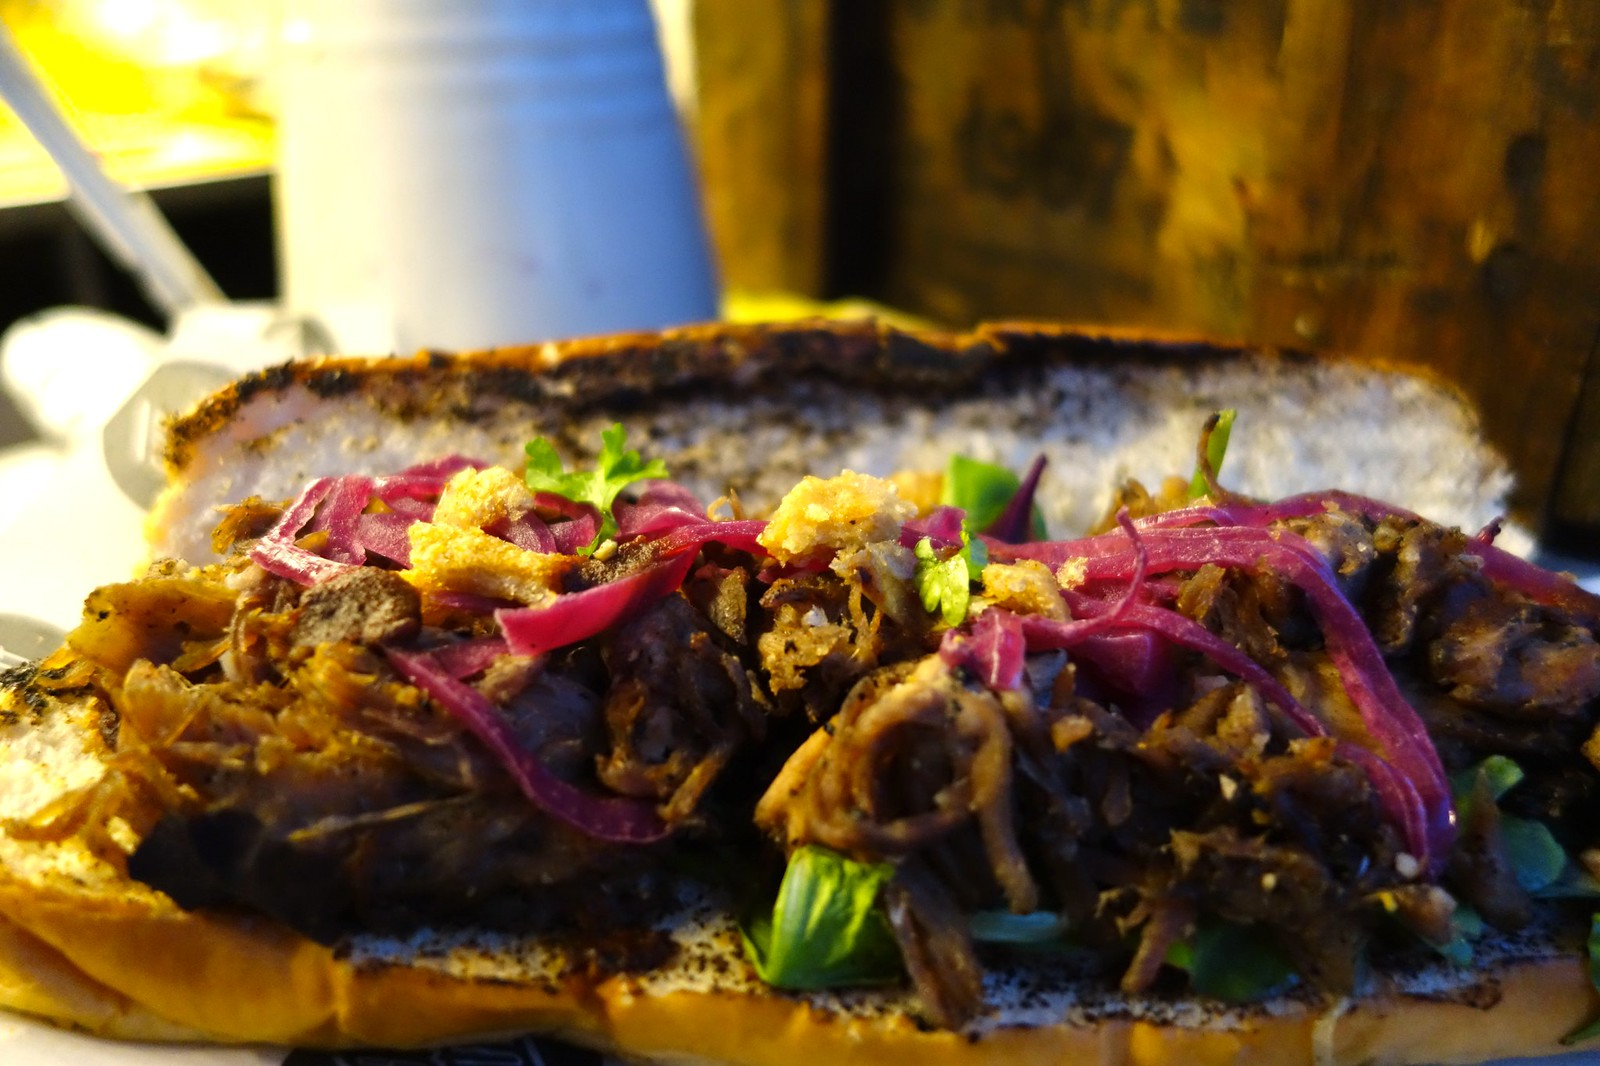 The British Street Food Festival 2015: Sub Cult, Rodeo Sub: Hung Beef, Shallot Marmalade, Truffle Mayonnaise